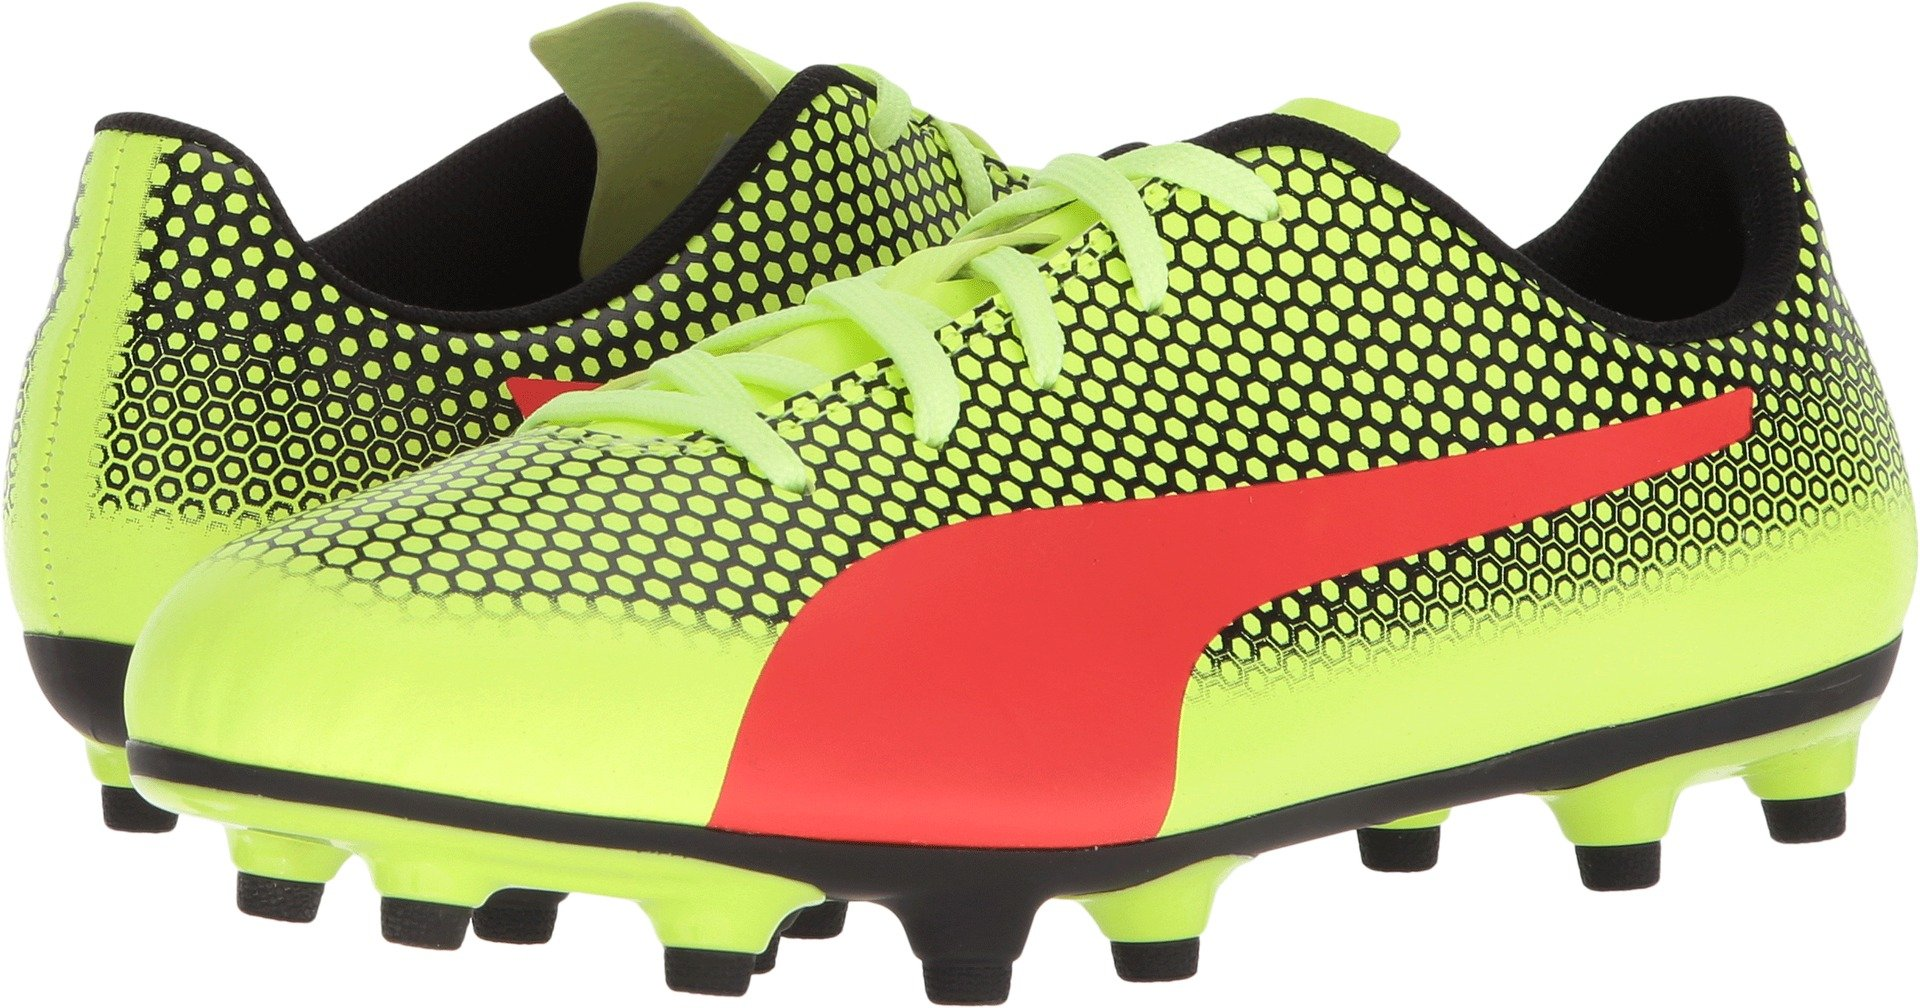 PUMA Unisex-Kids Spirit FG Soccer-Shoes, Fizzy Yellow-Red Blast Black, 3.5 M US Big Kid